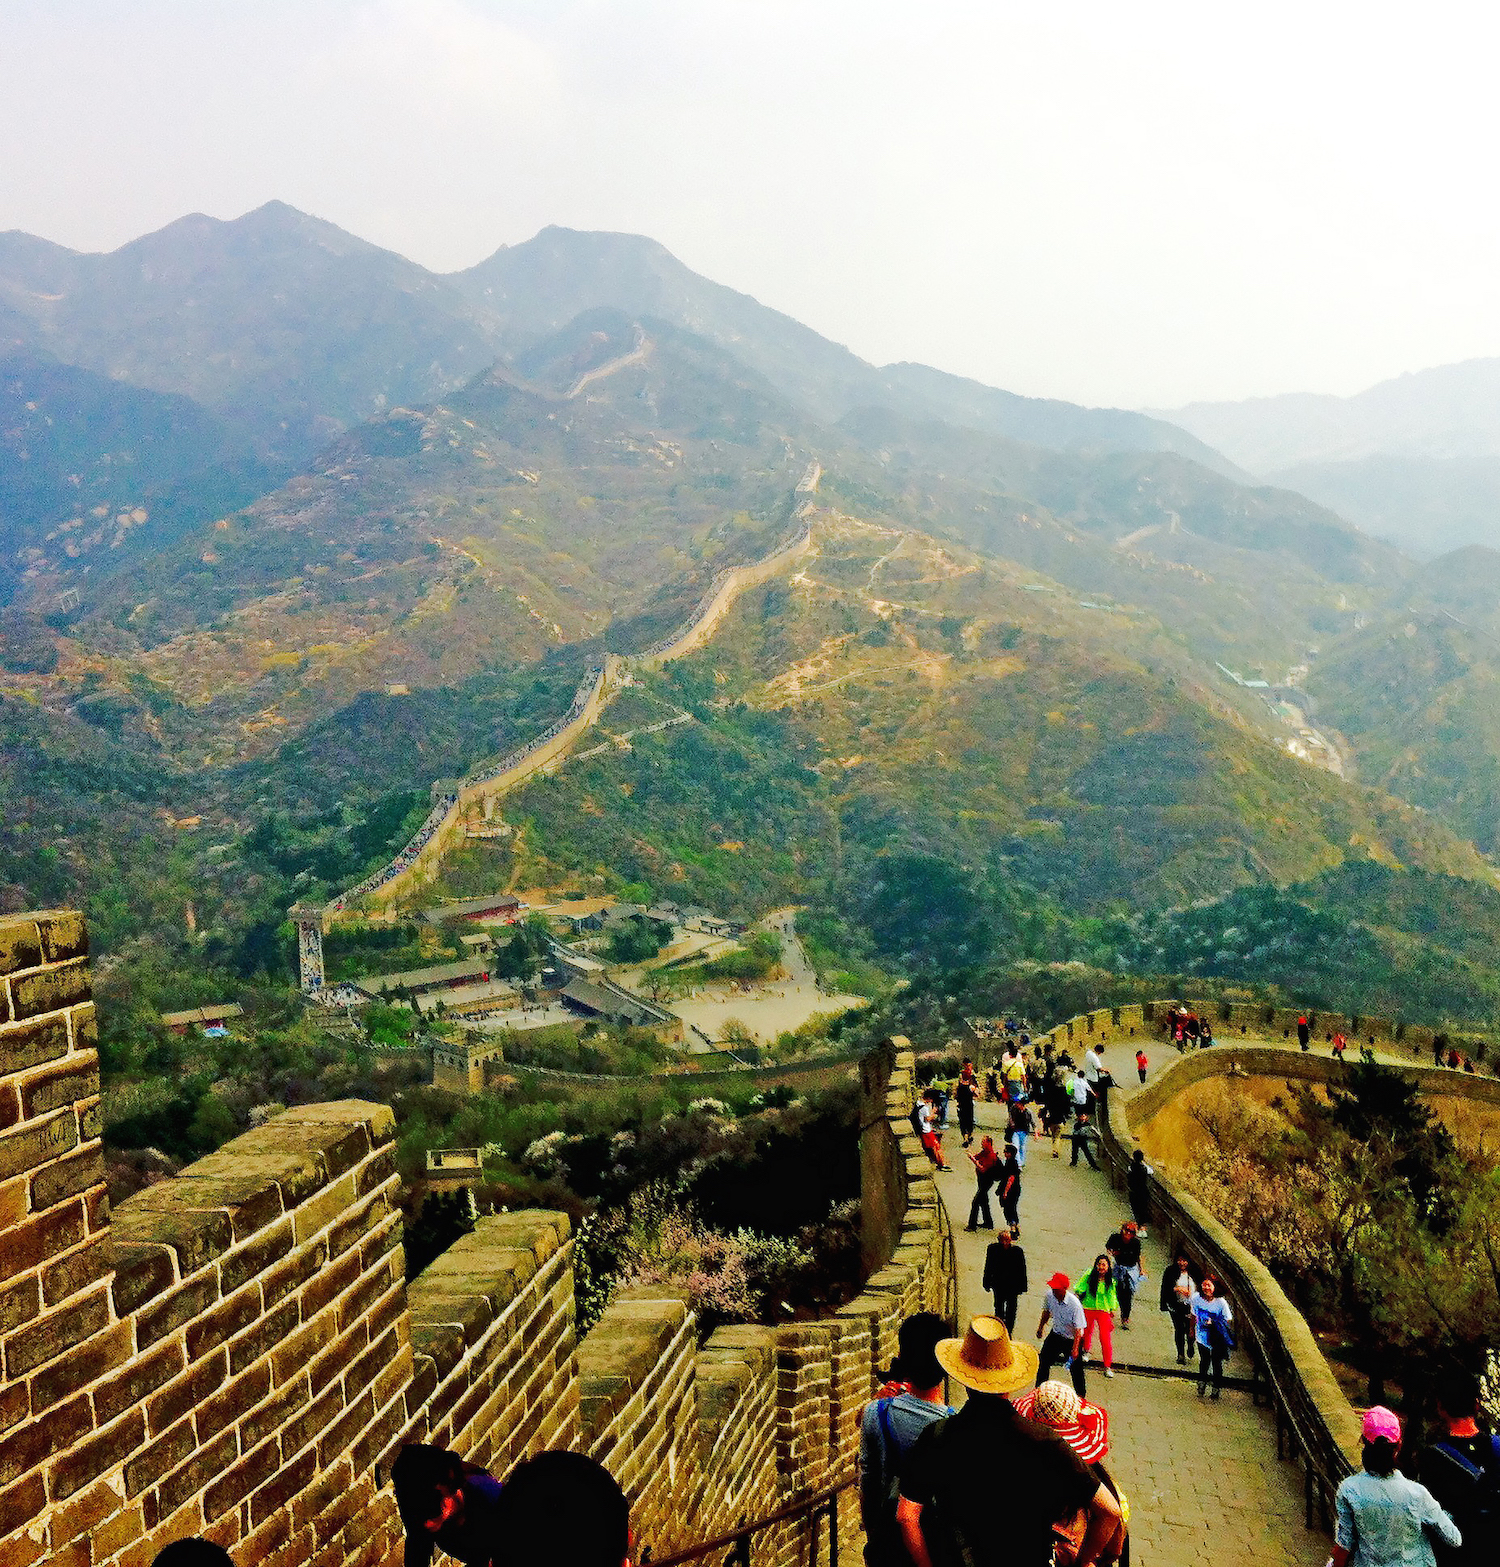 Another item on Clements' bucket list was to stand on the Great Wall of China.